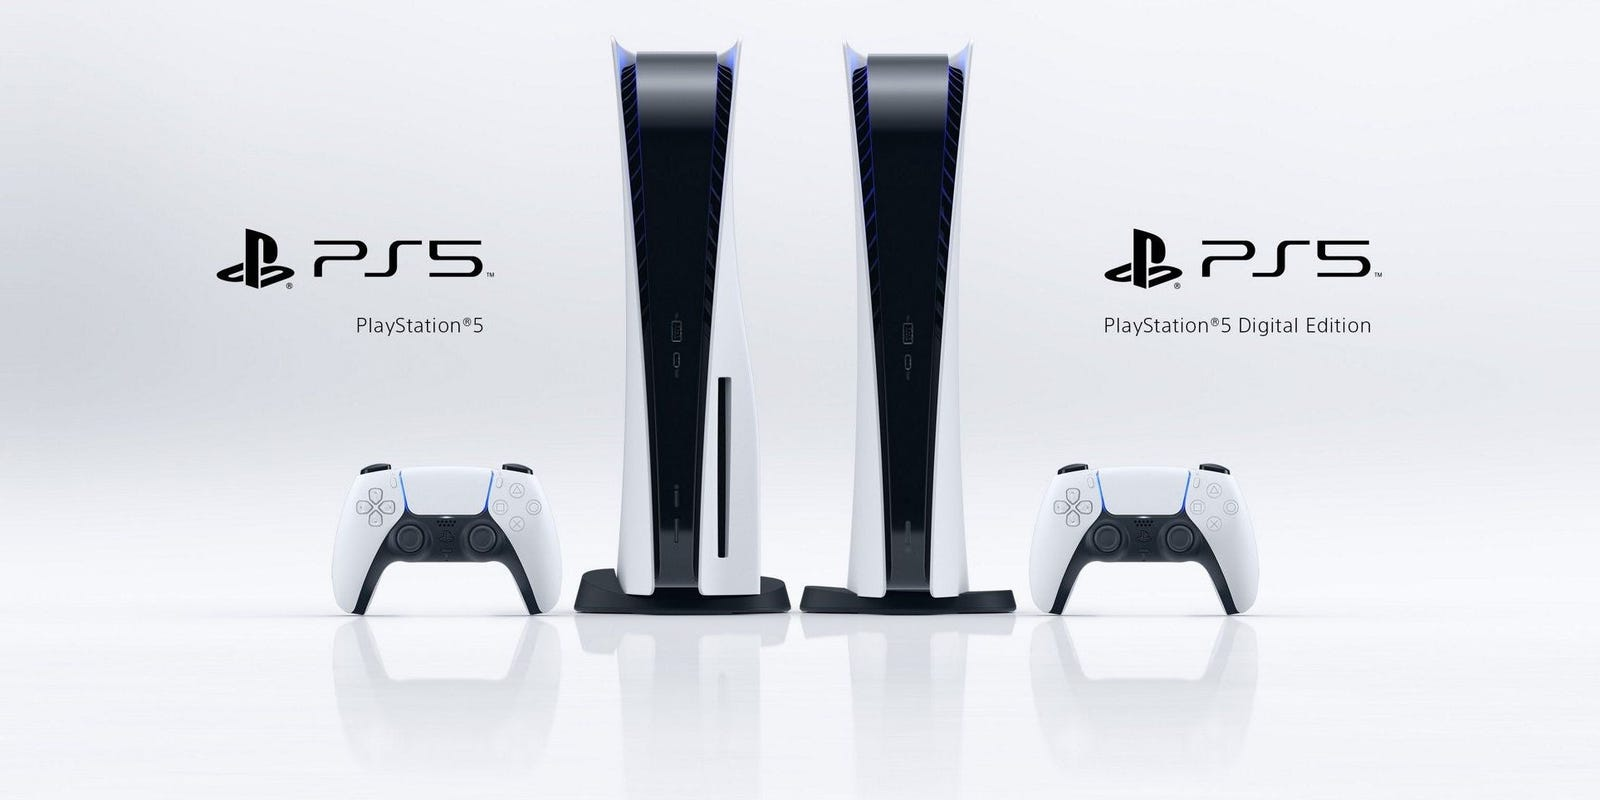 PS5 pre orders sold out immediately, but Walmart just added more if you hurry